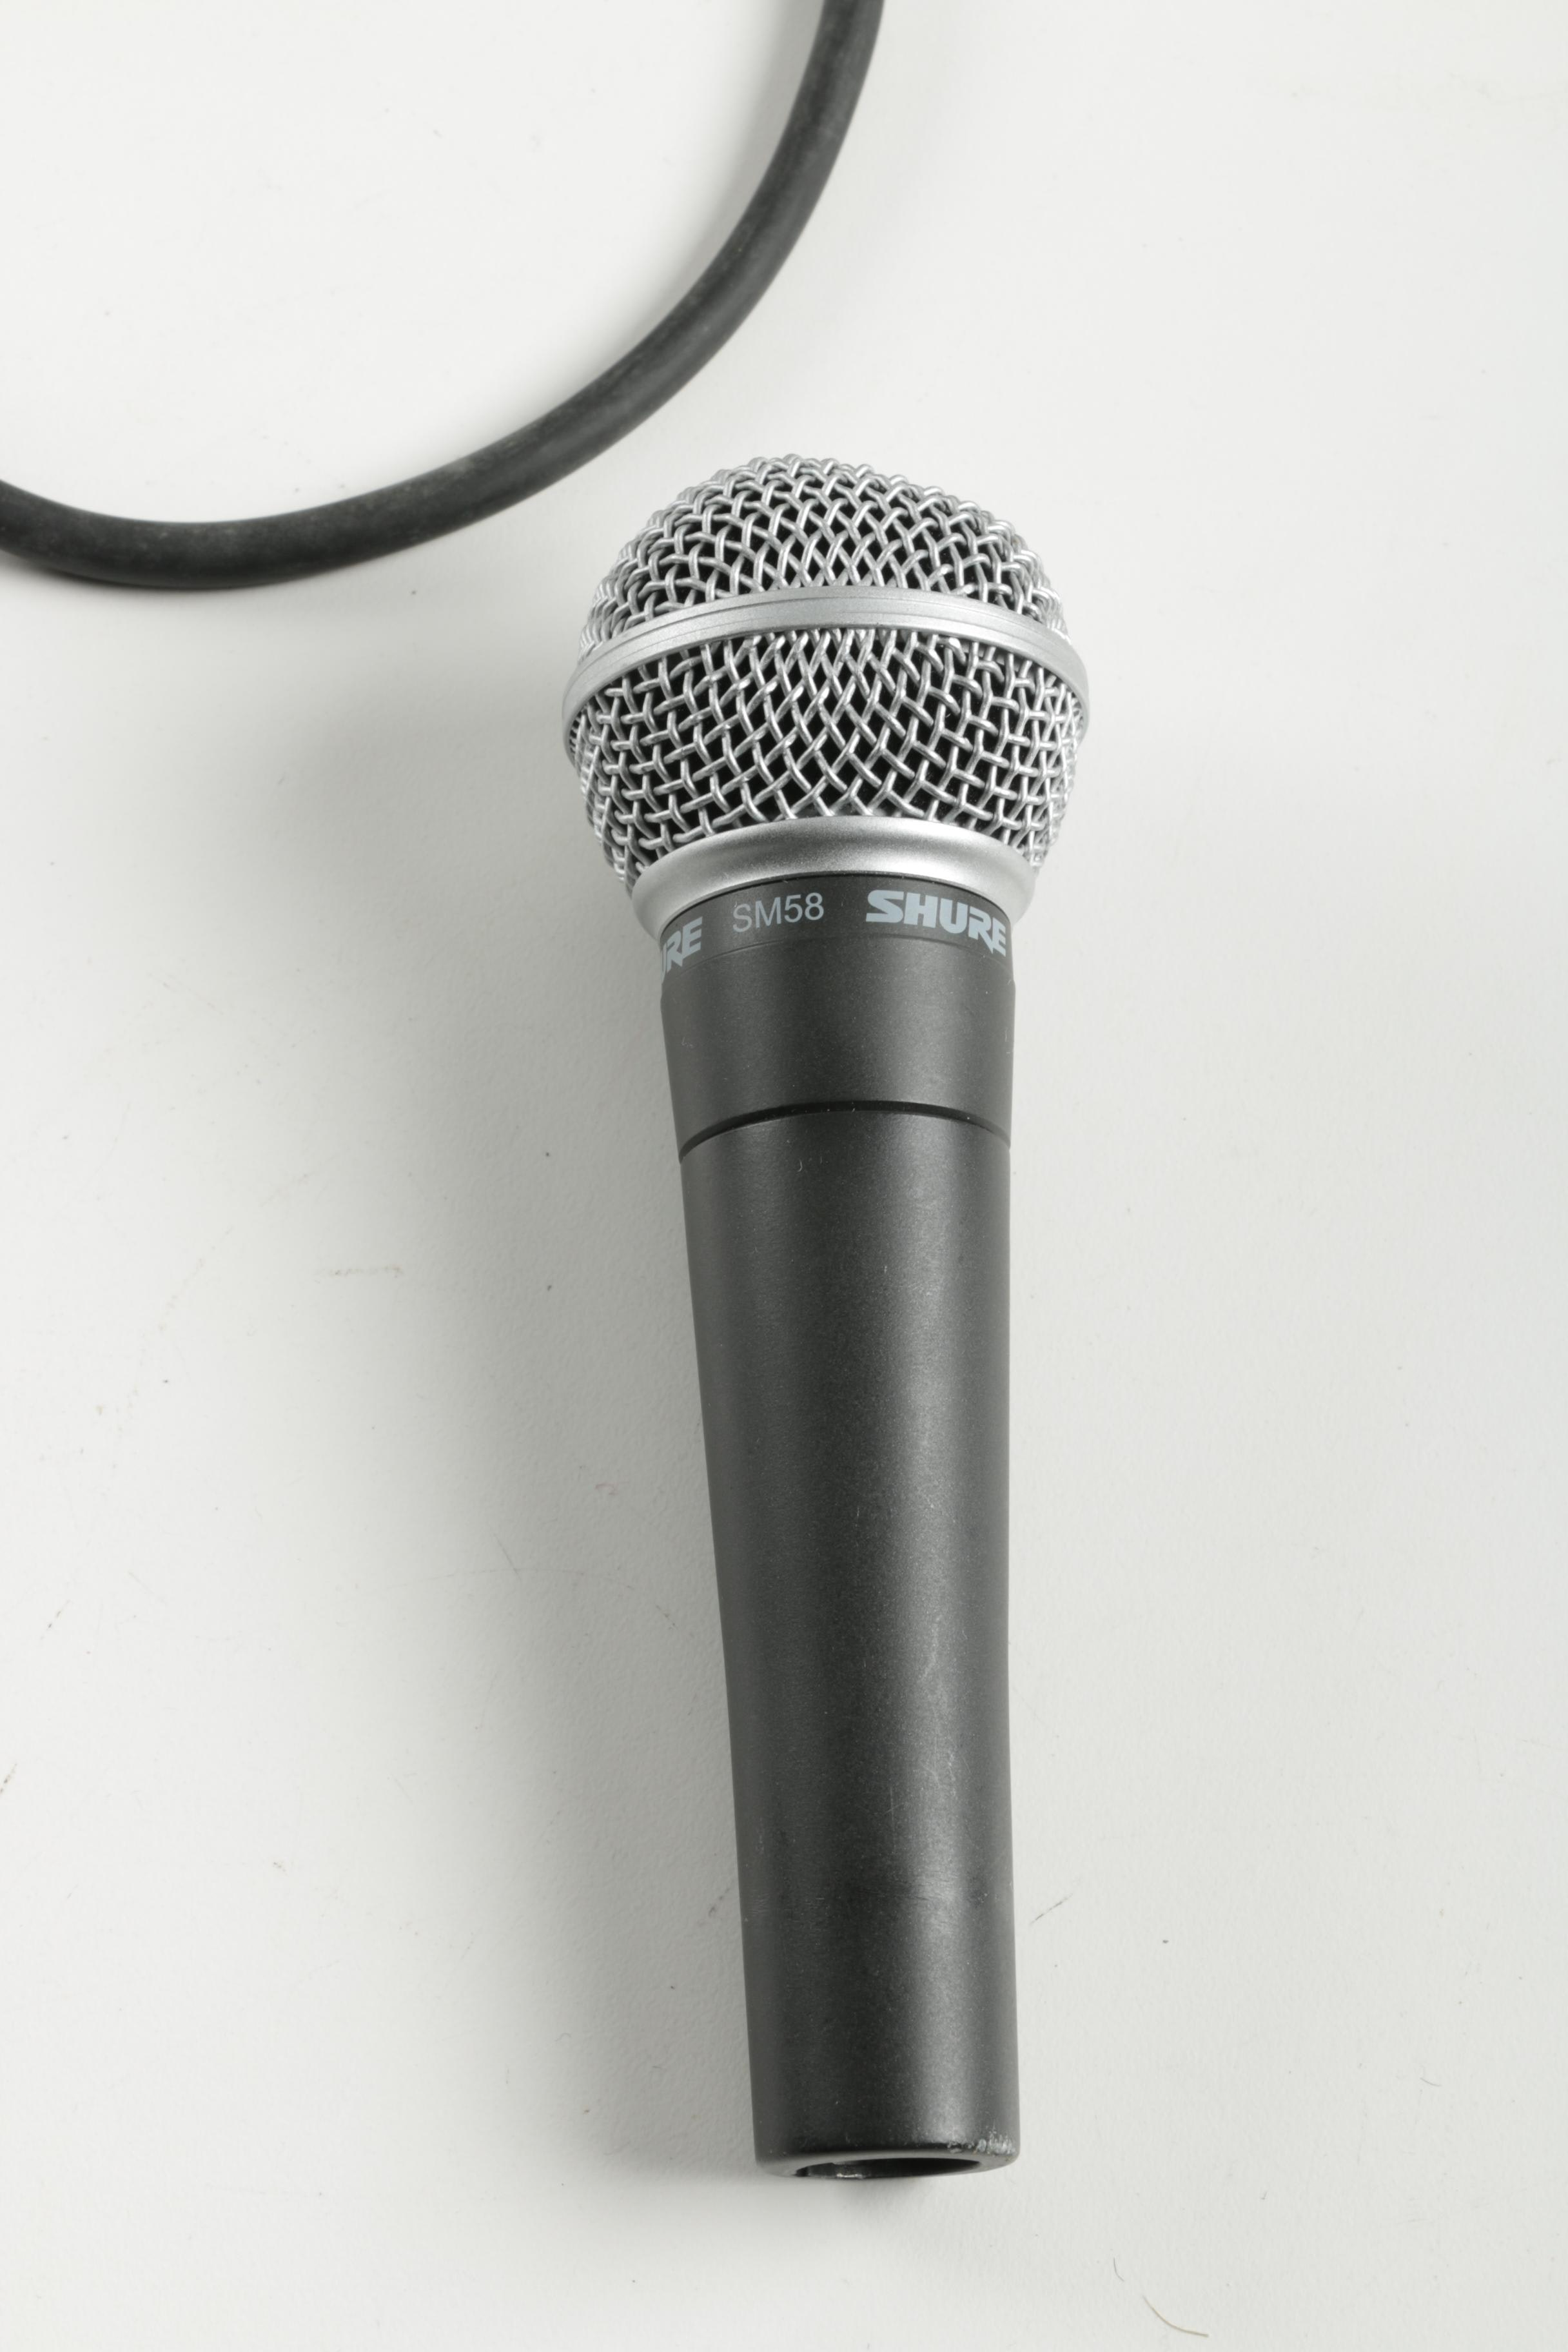 Shure SM58 Microphone and Cables